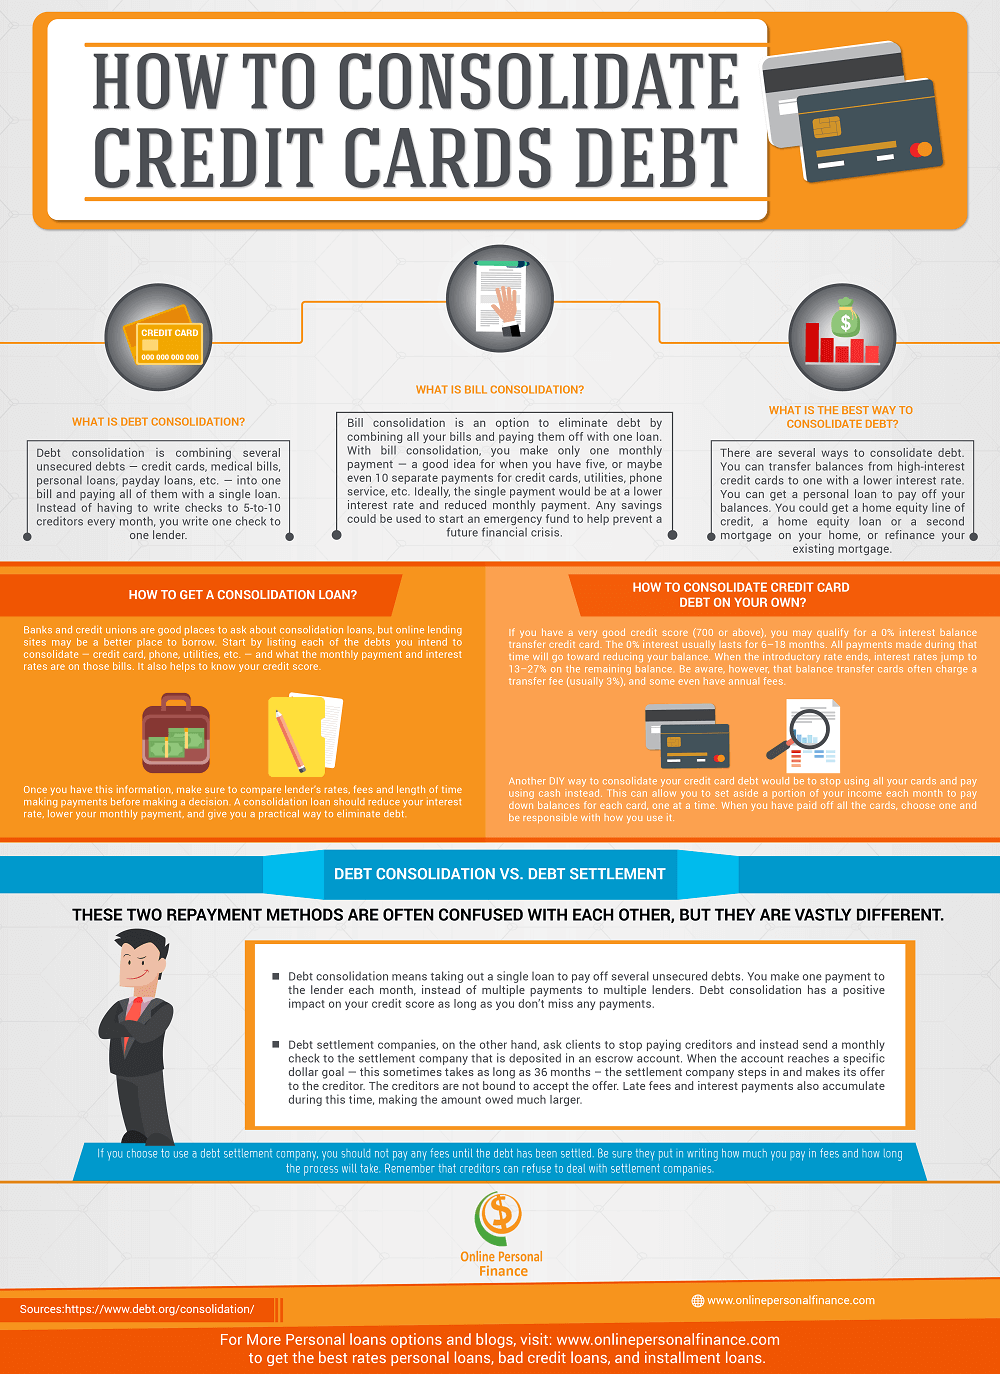 How To Consolidate Credit Cards Debt Infographic Consolidate Credit Card Debt Debt Credit Cards Debt